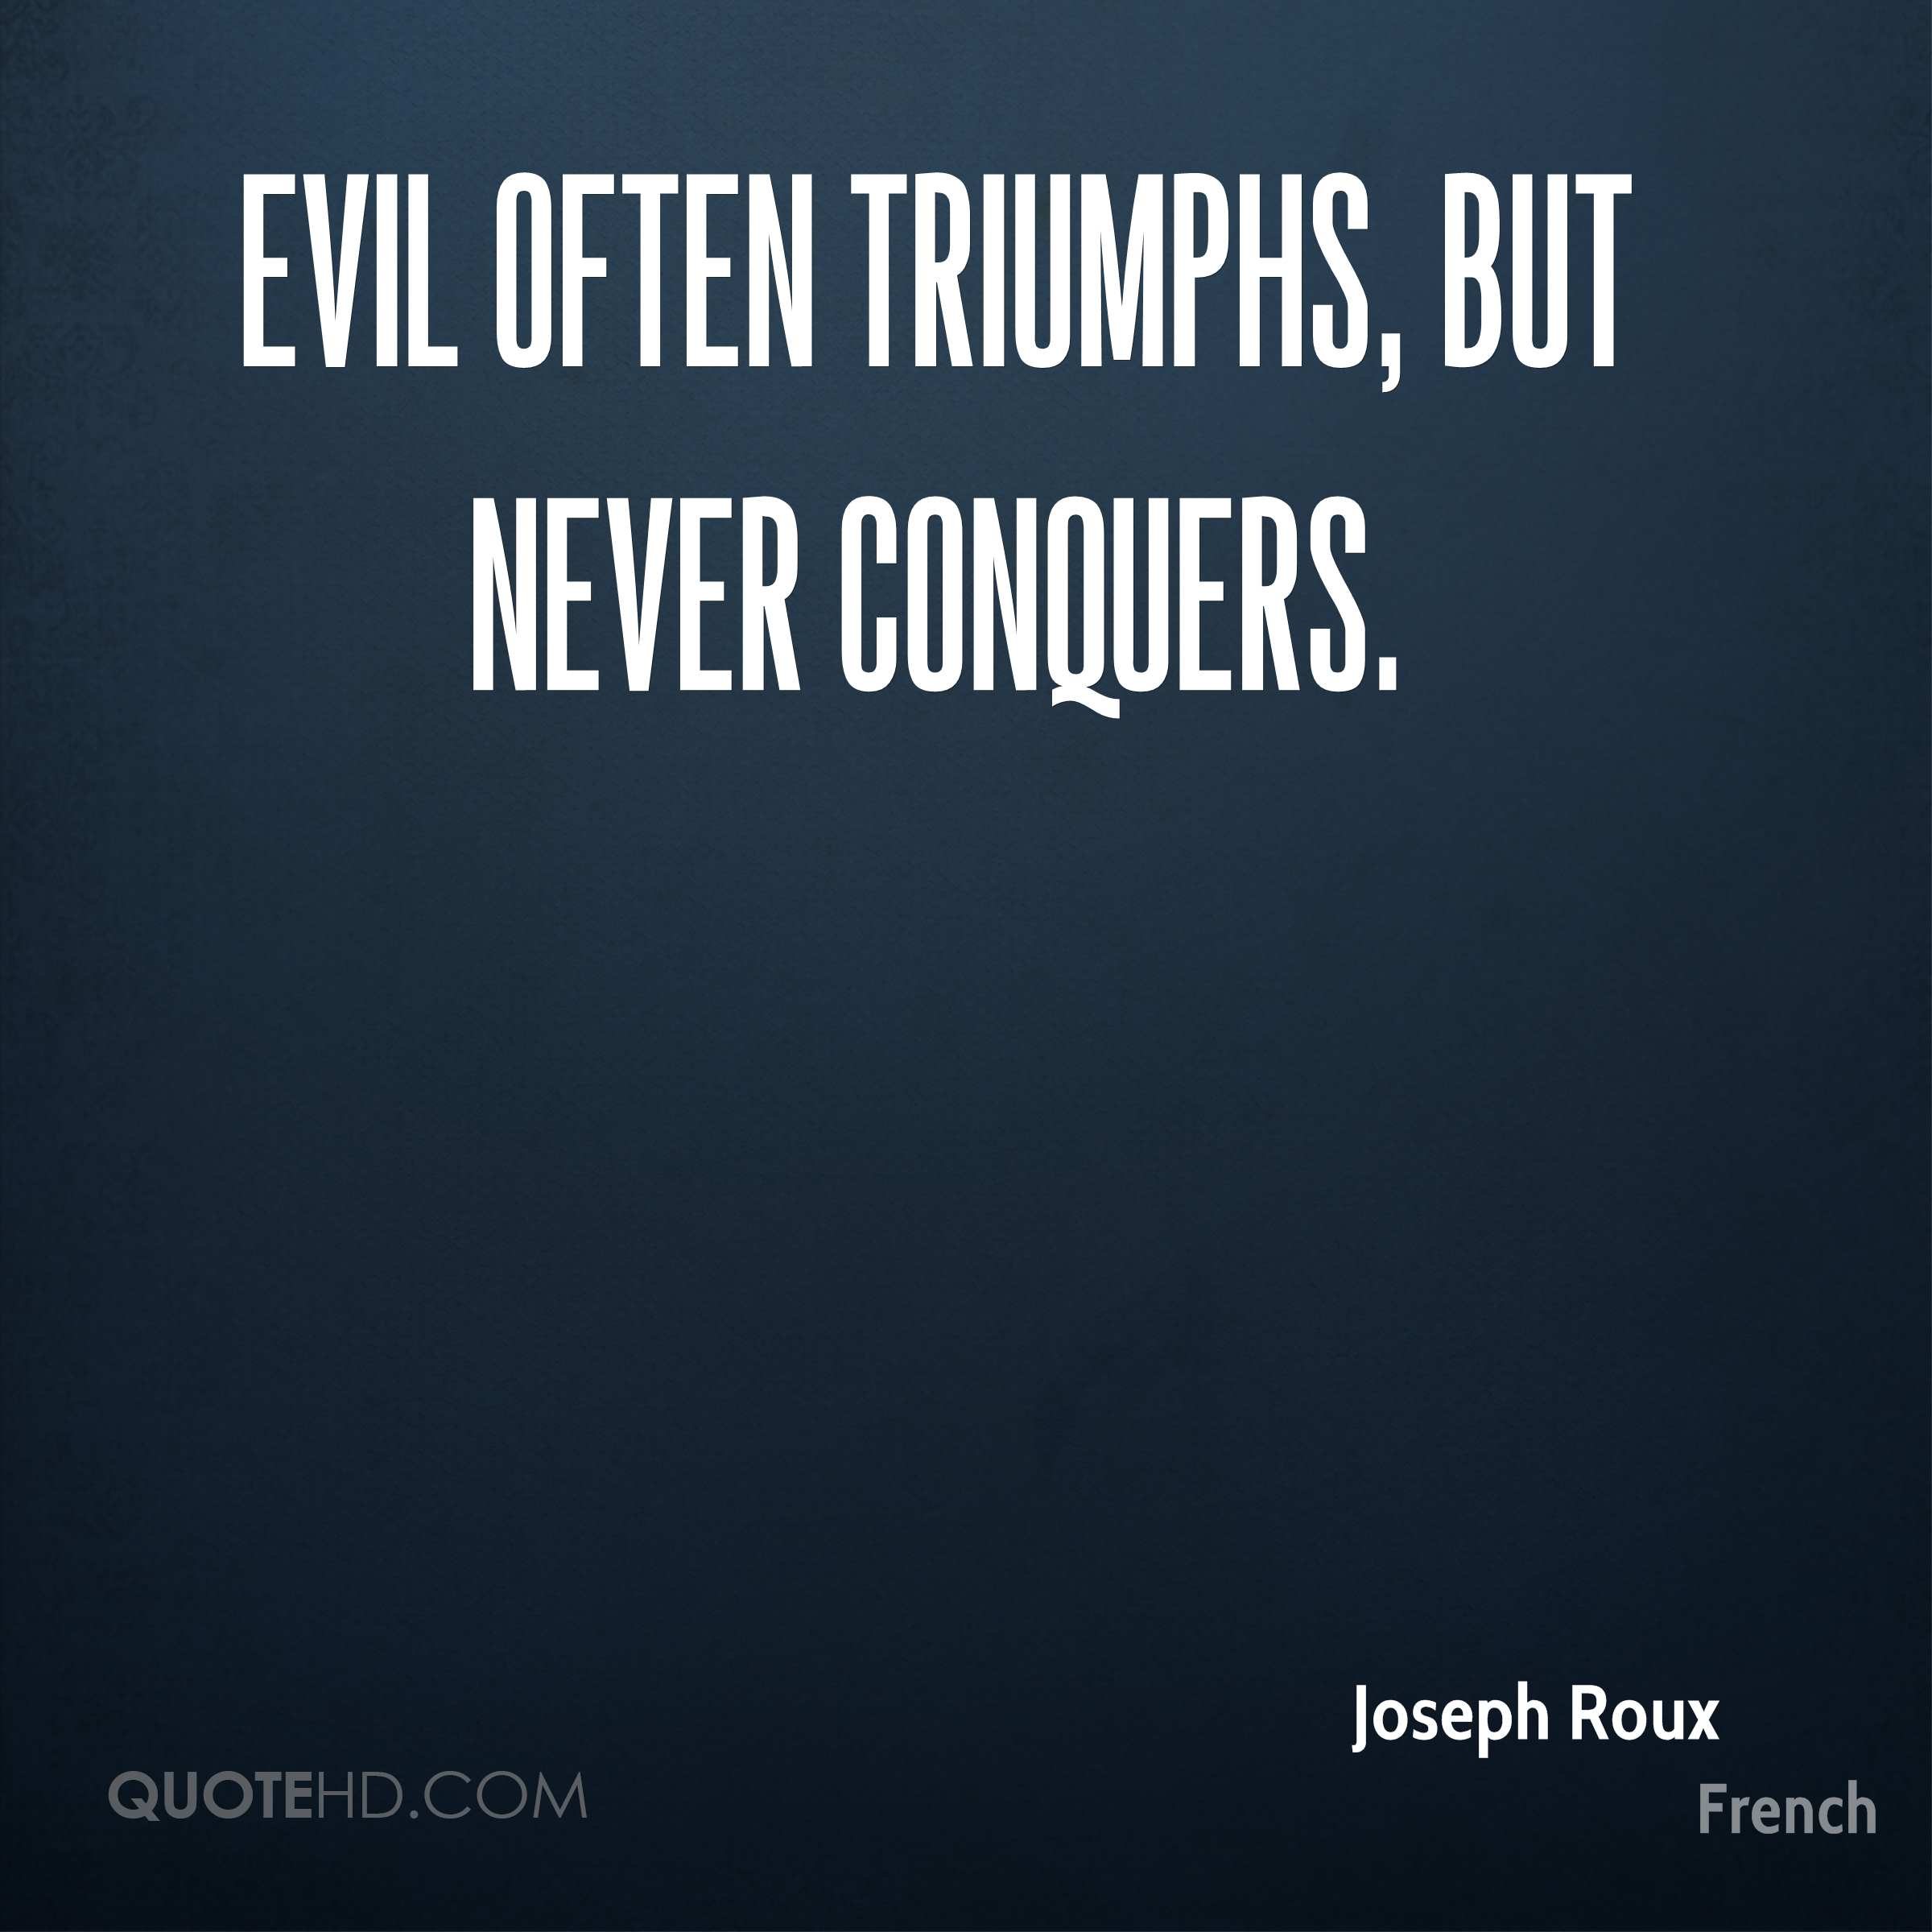 evil triumphs but never conquers In literature, evil often triumphs but never conquers good literature substitutes for an experience which we have not ourselves lived through.